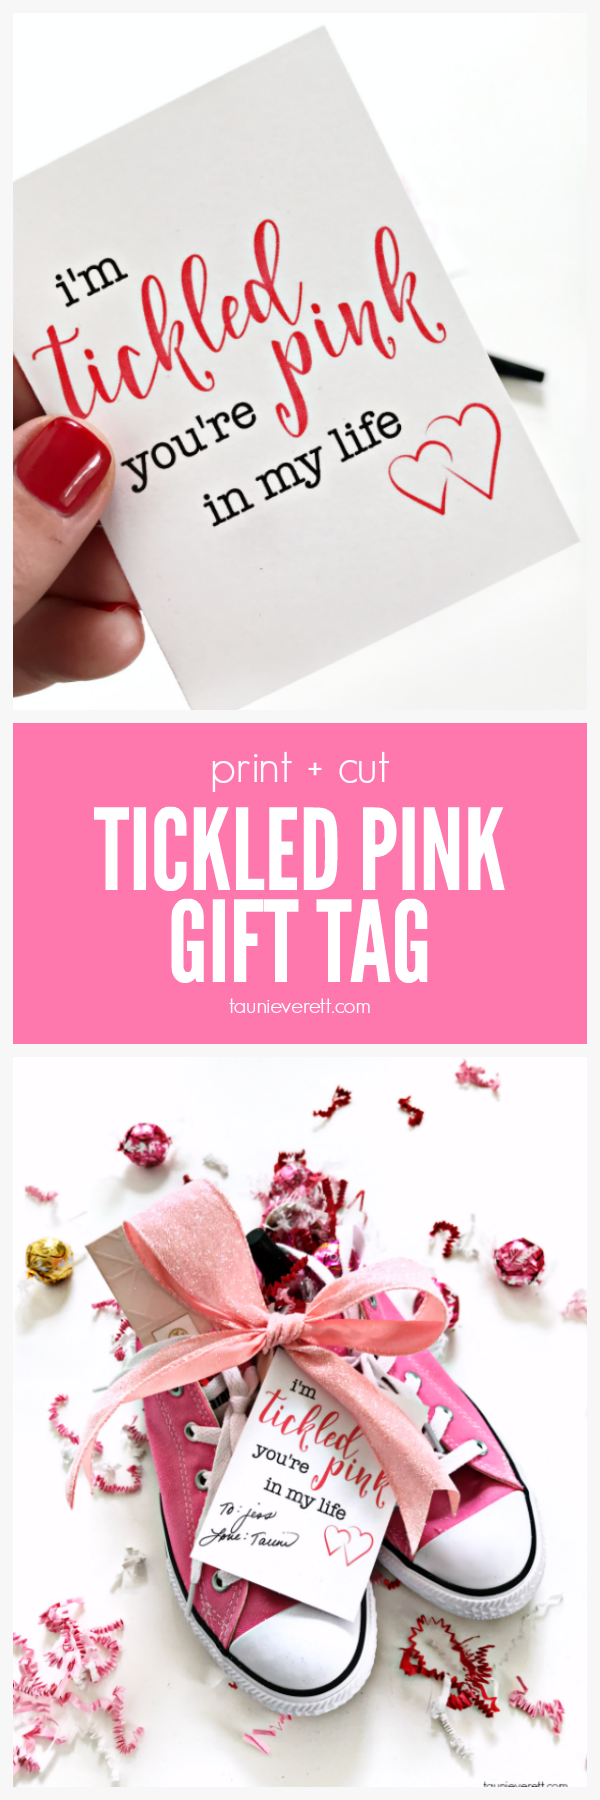 Free download print and cut tickled pink gift tag.